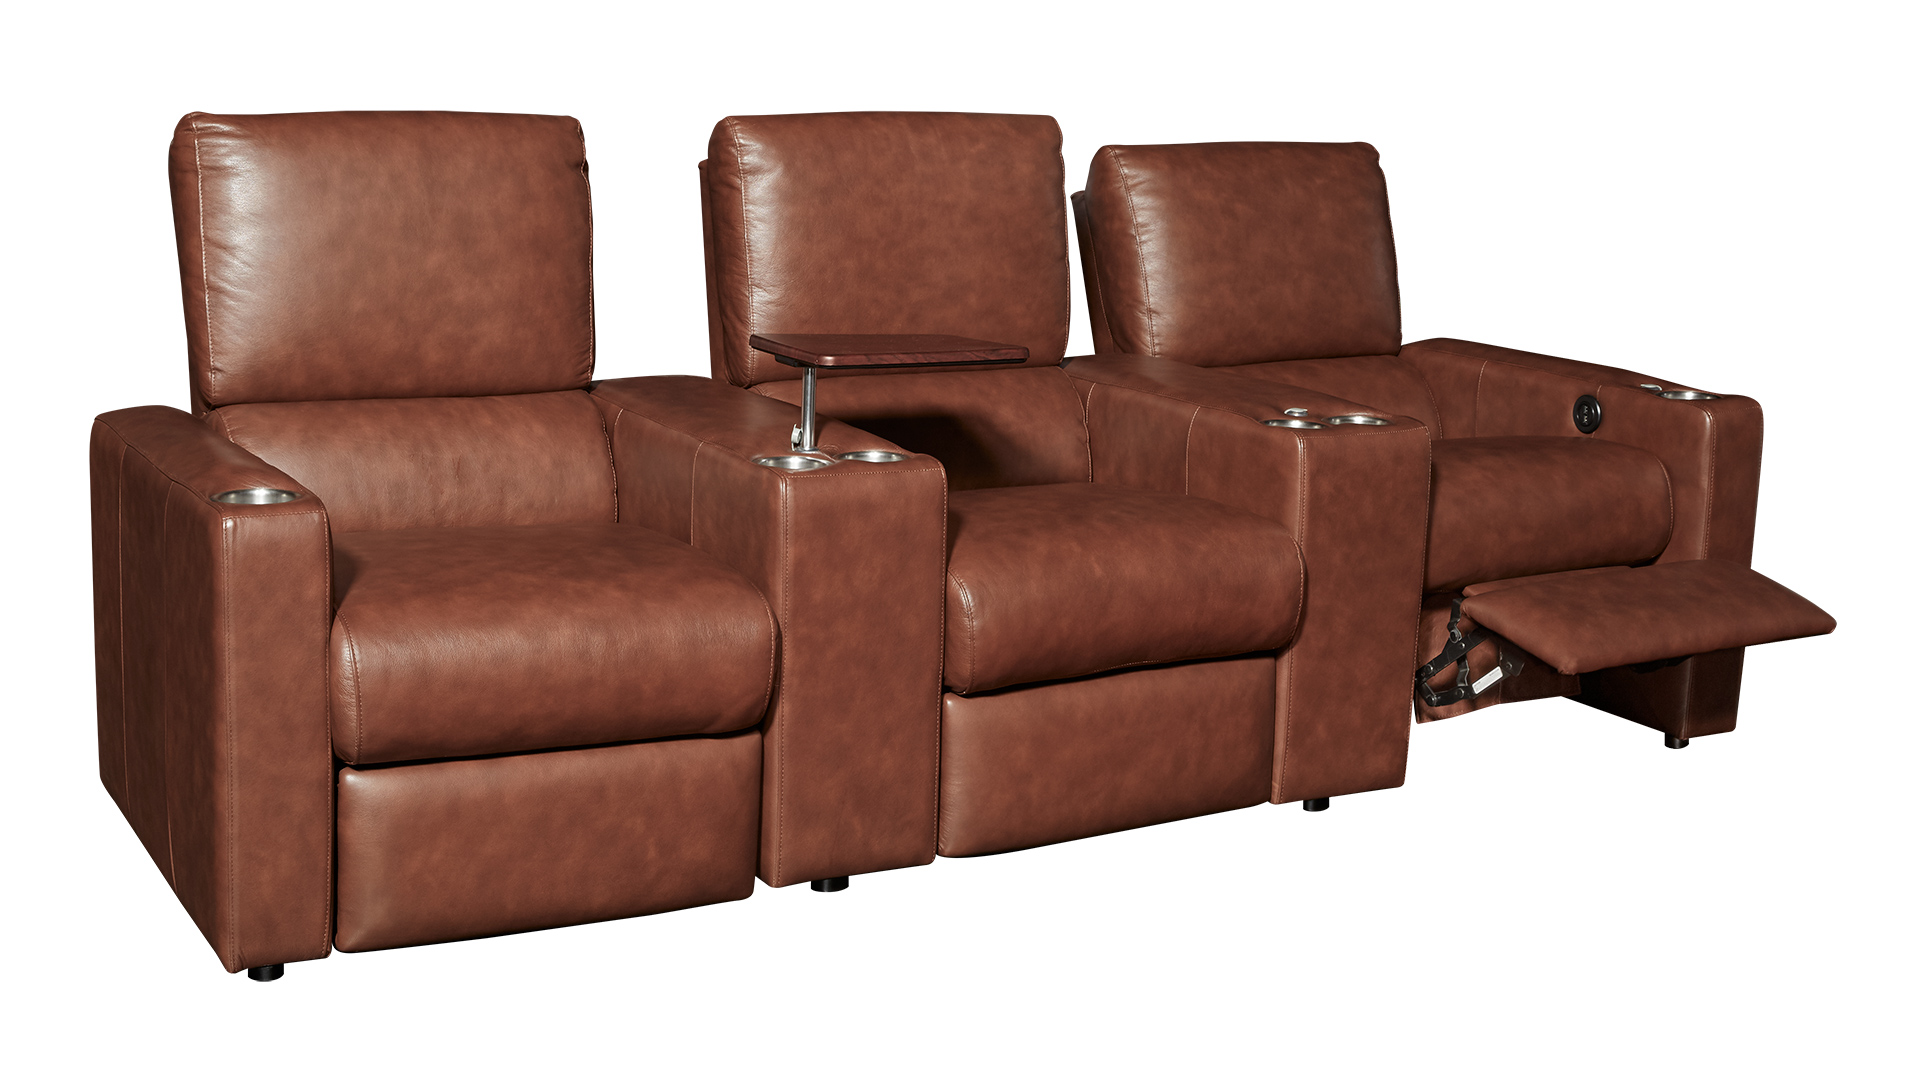 G133 Maple Leather Power Reclining Home Theater Seating, 3-Piece Set, , hi-res